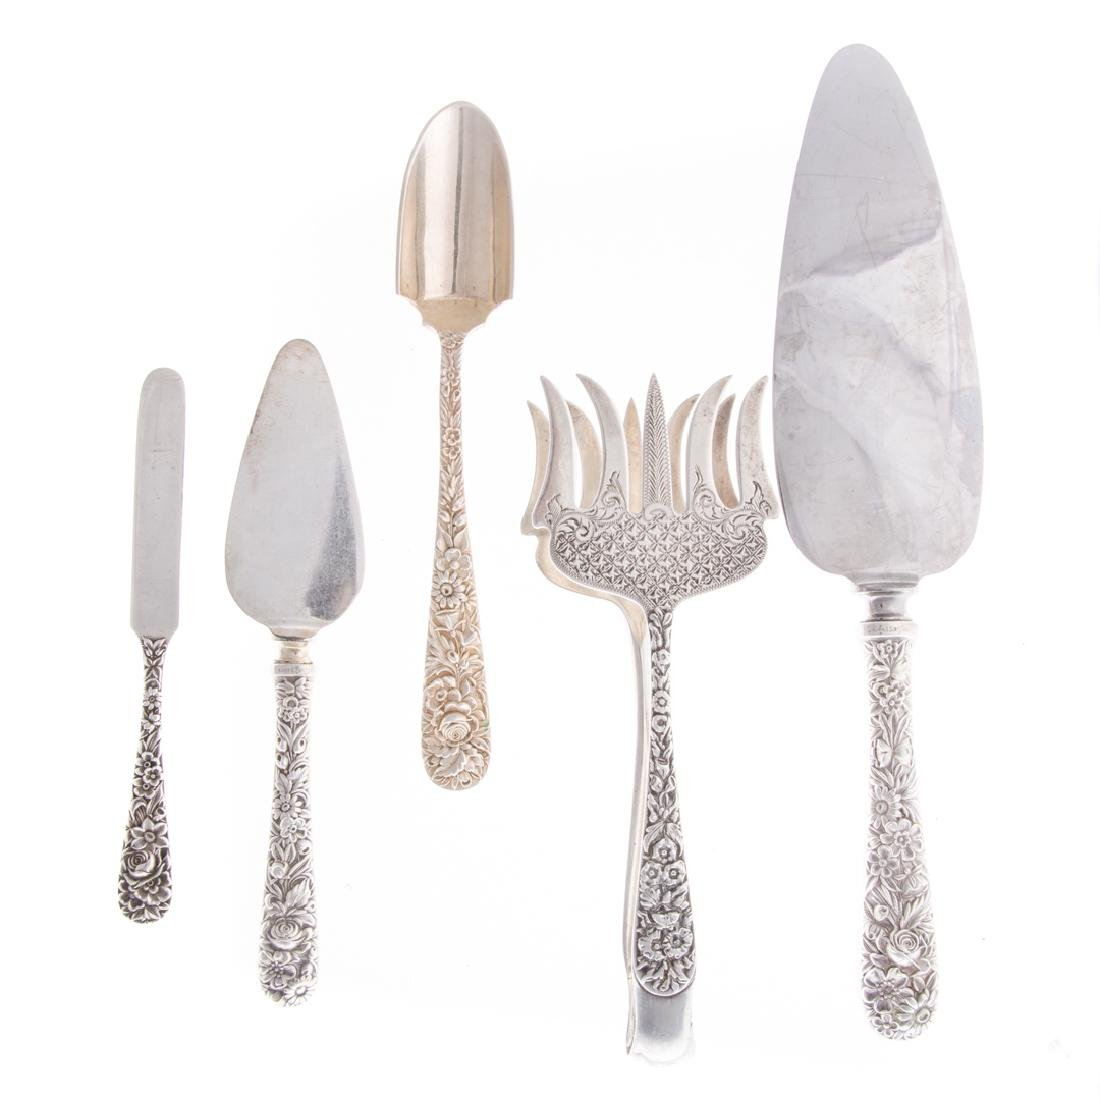 Kirk sterling silver serving utensils (5)